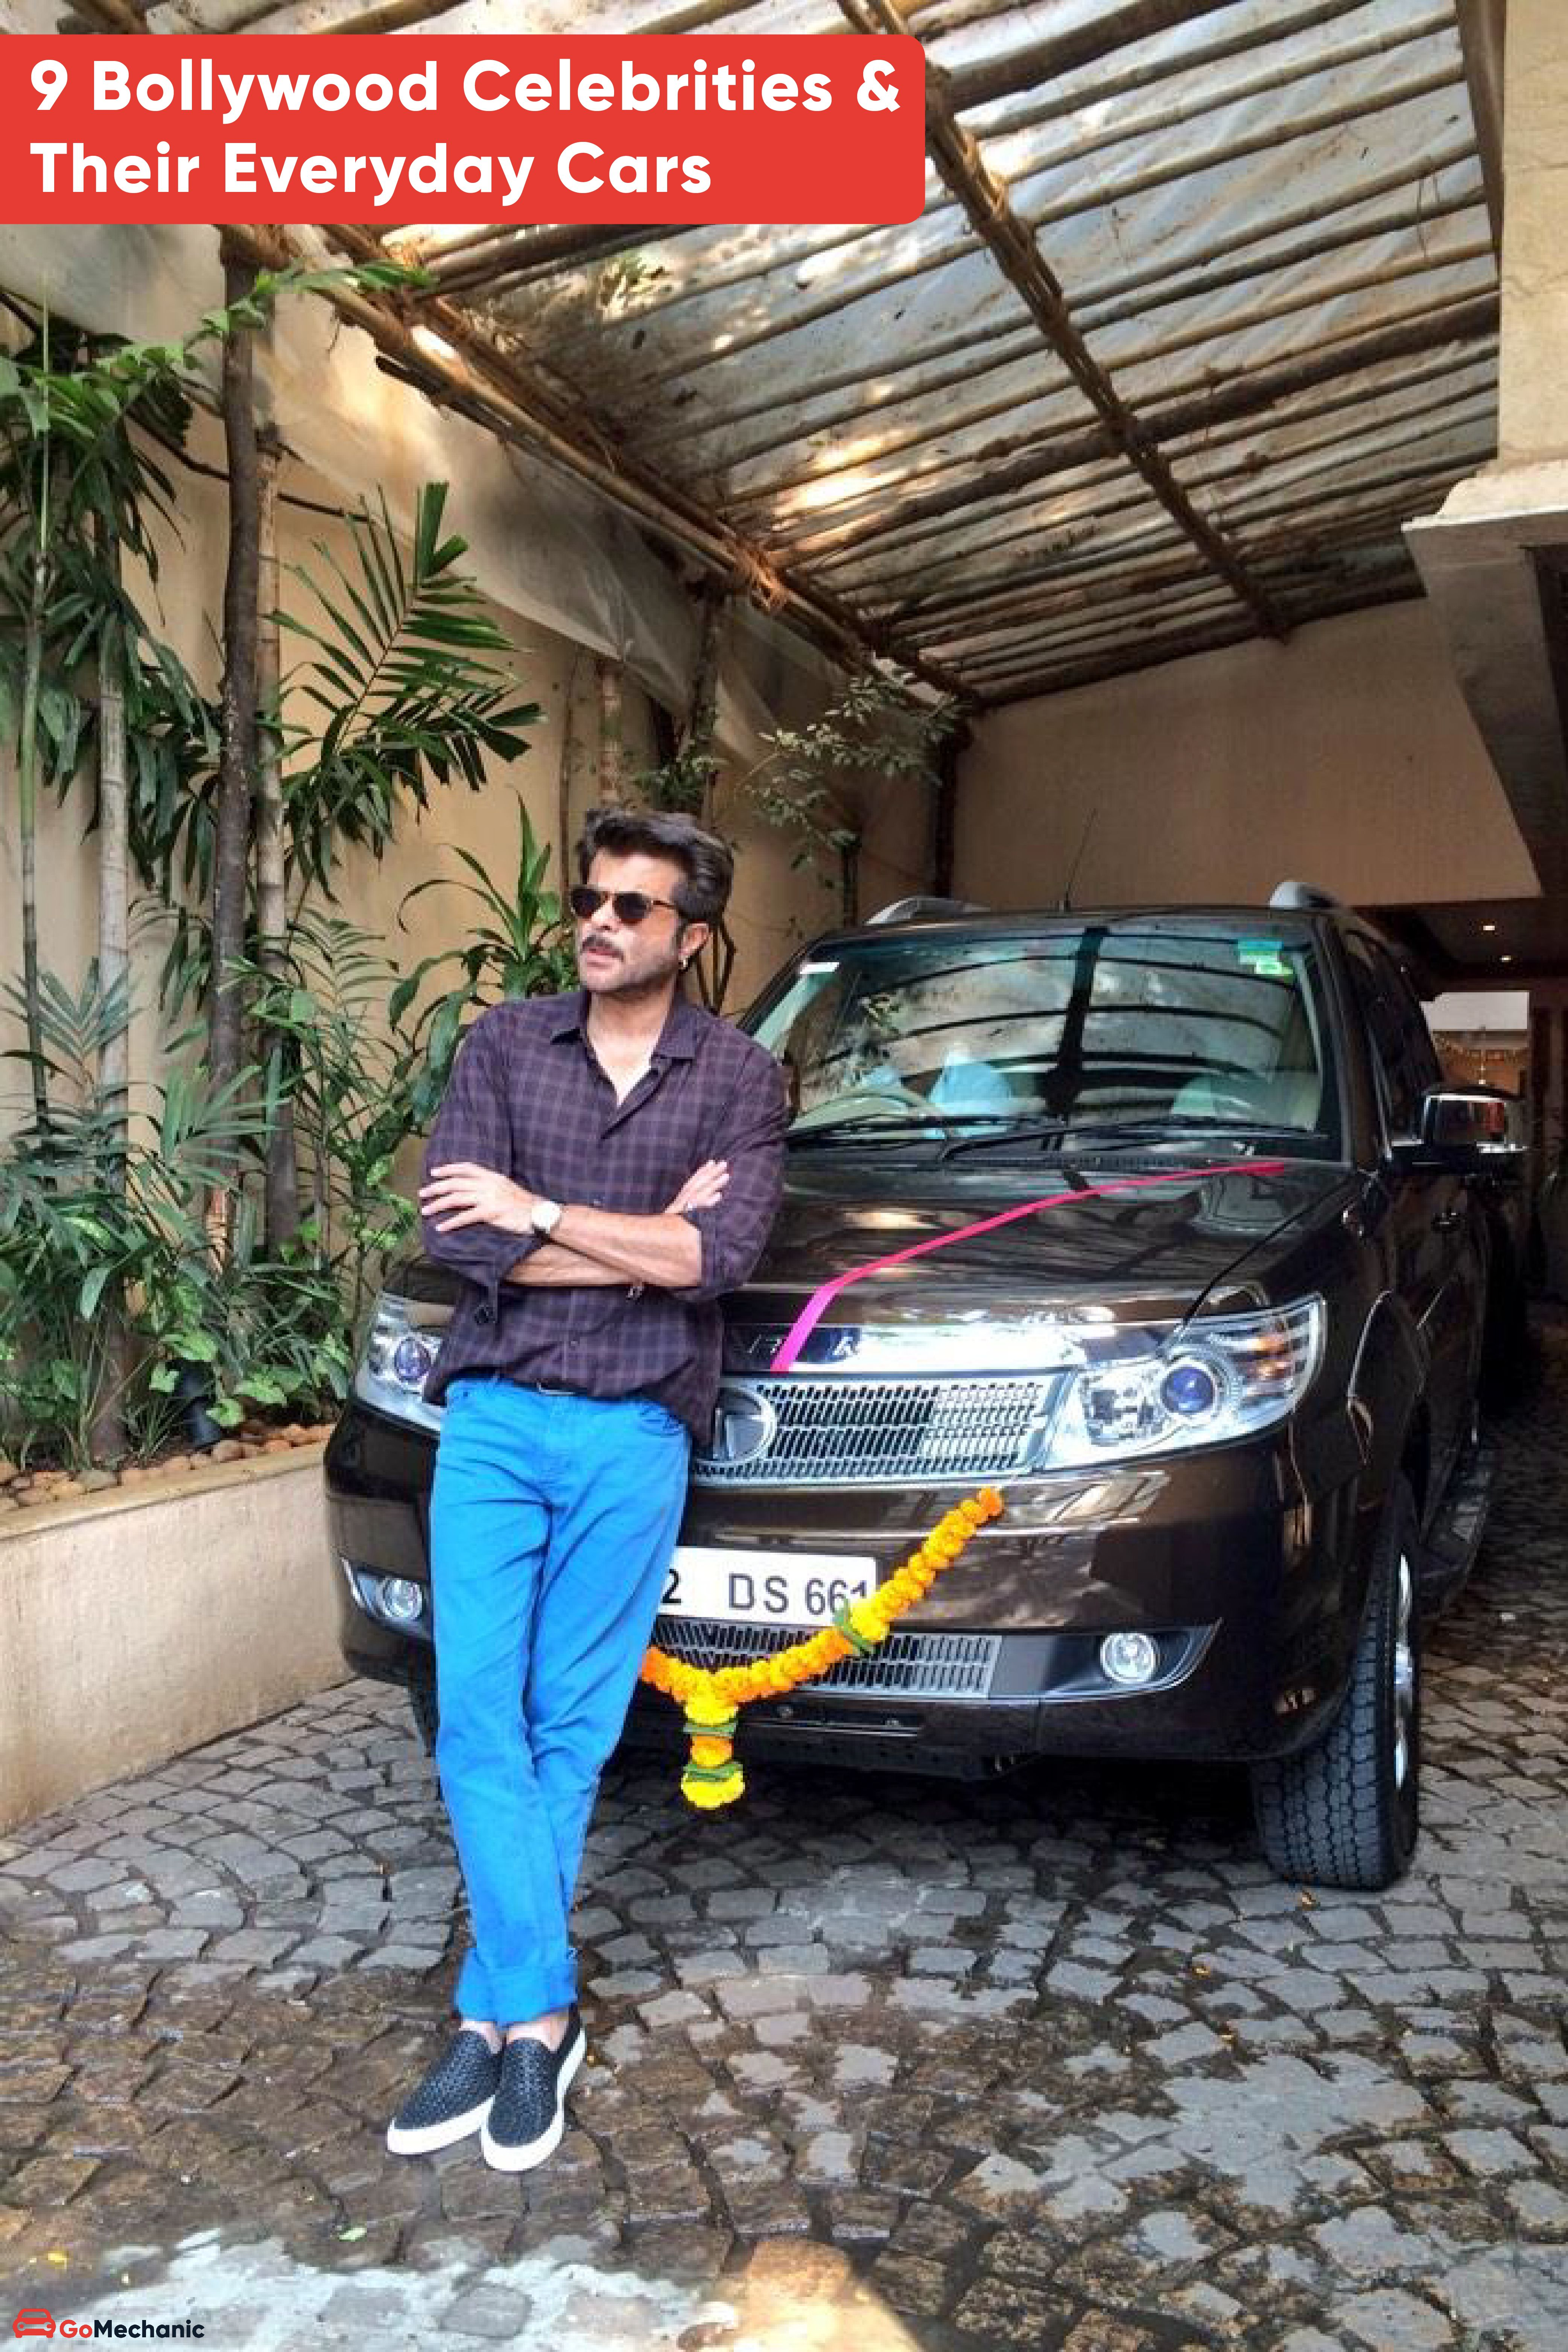 Top 10 Famous Bollywood Celebrities With Their Cars Bollywood Celebrities Bollywood Celebrities